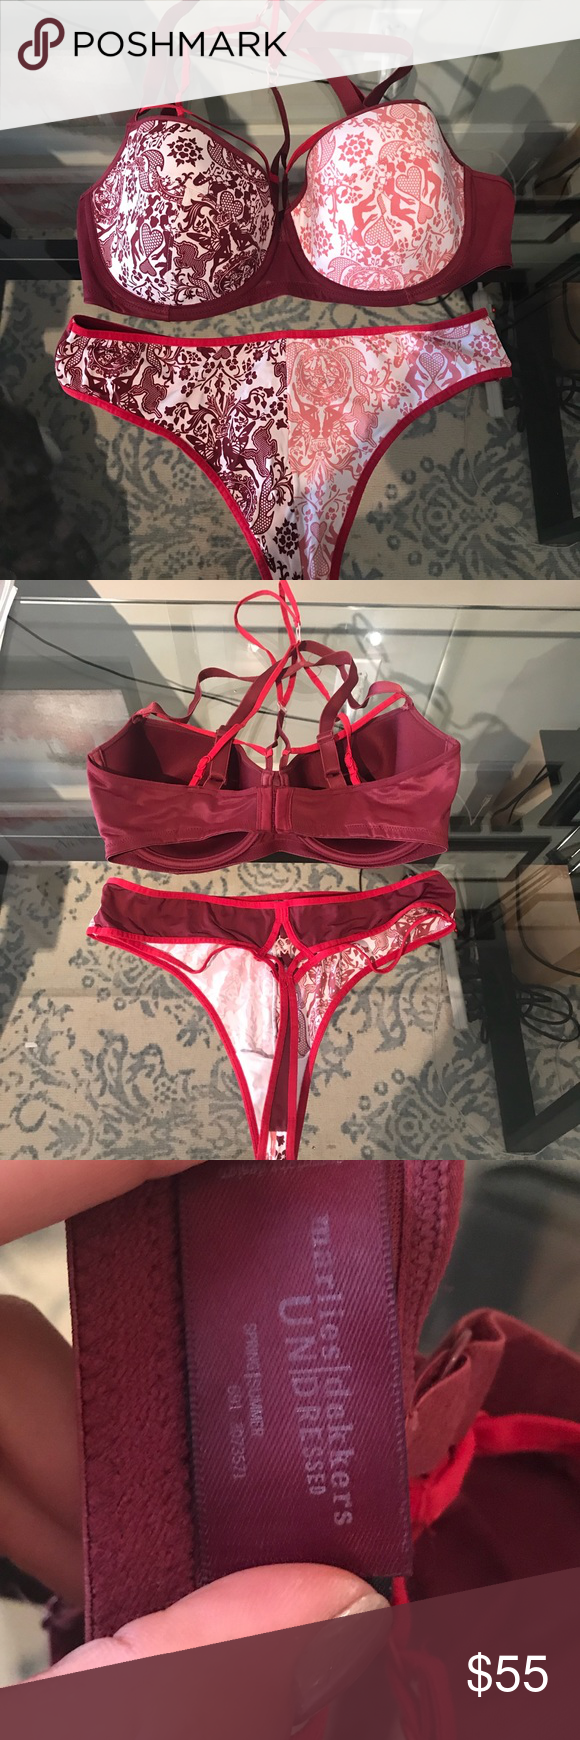 dab3b430a3e Marlies Dekkers Lingerie Set Famous Dutch designer that's been ...